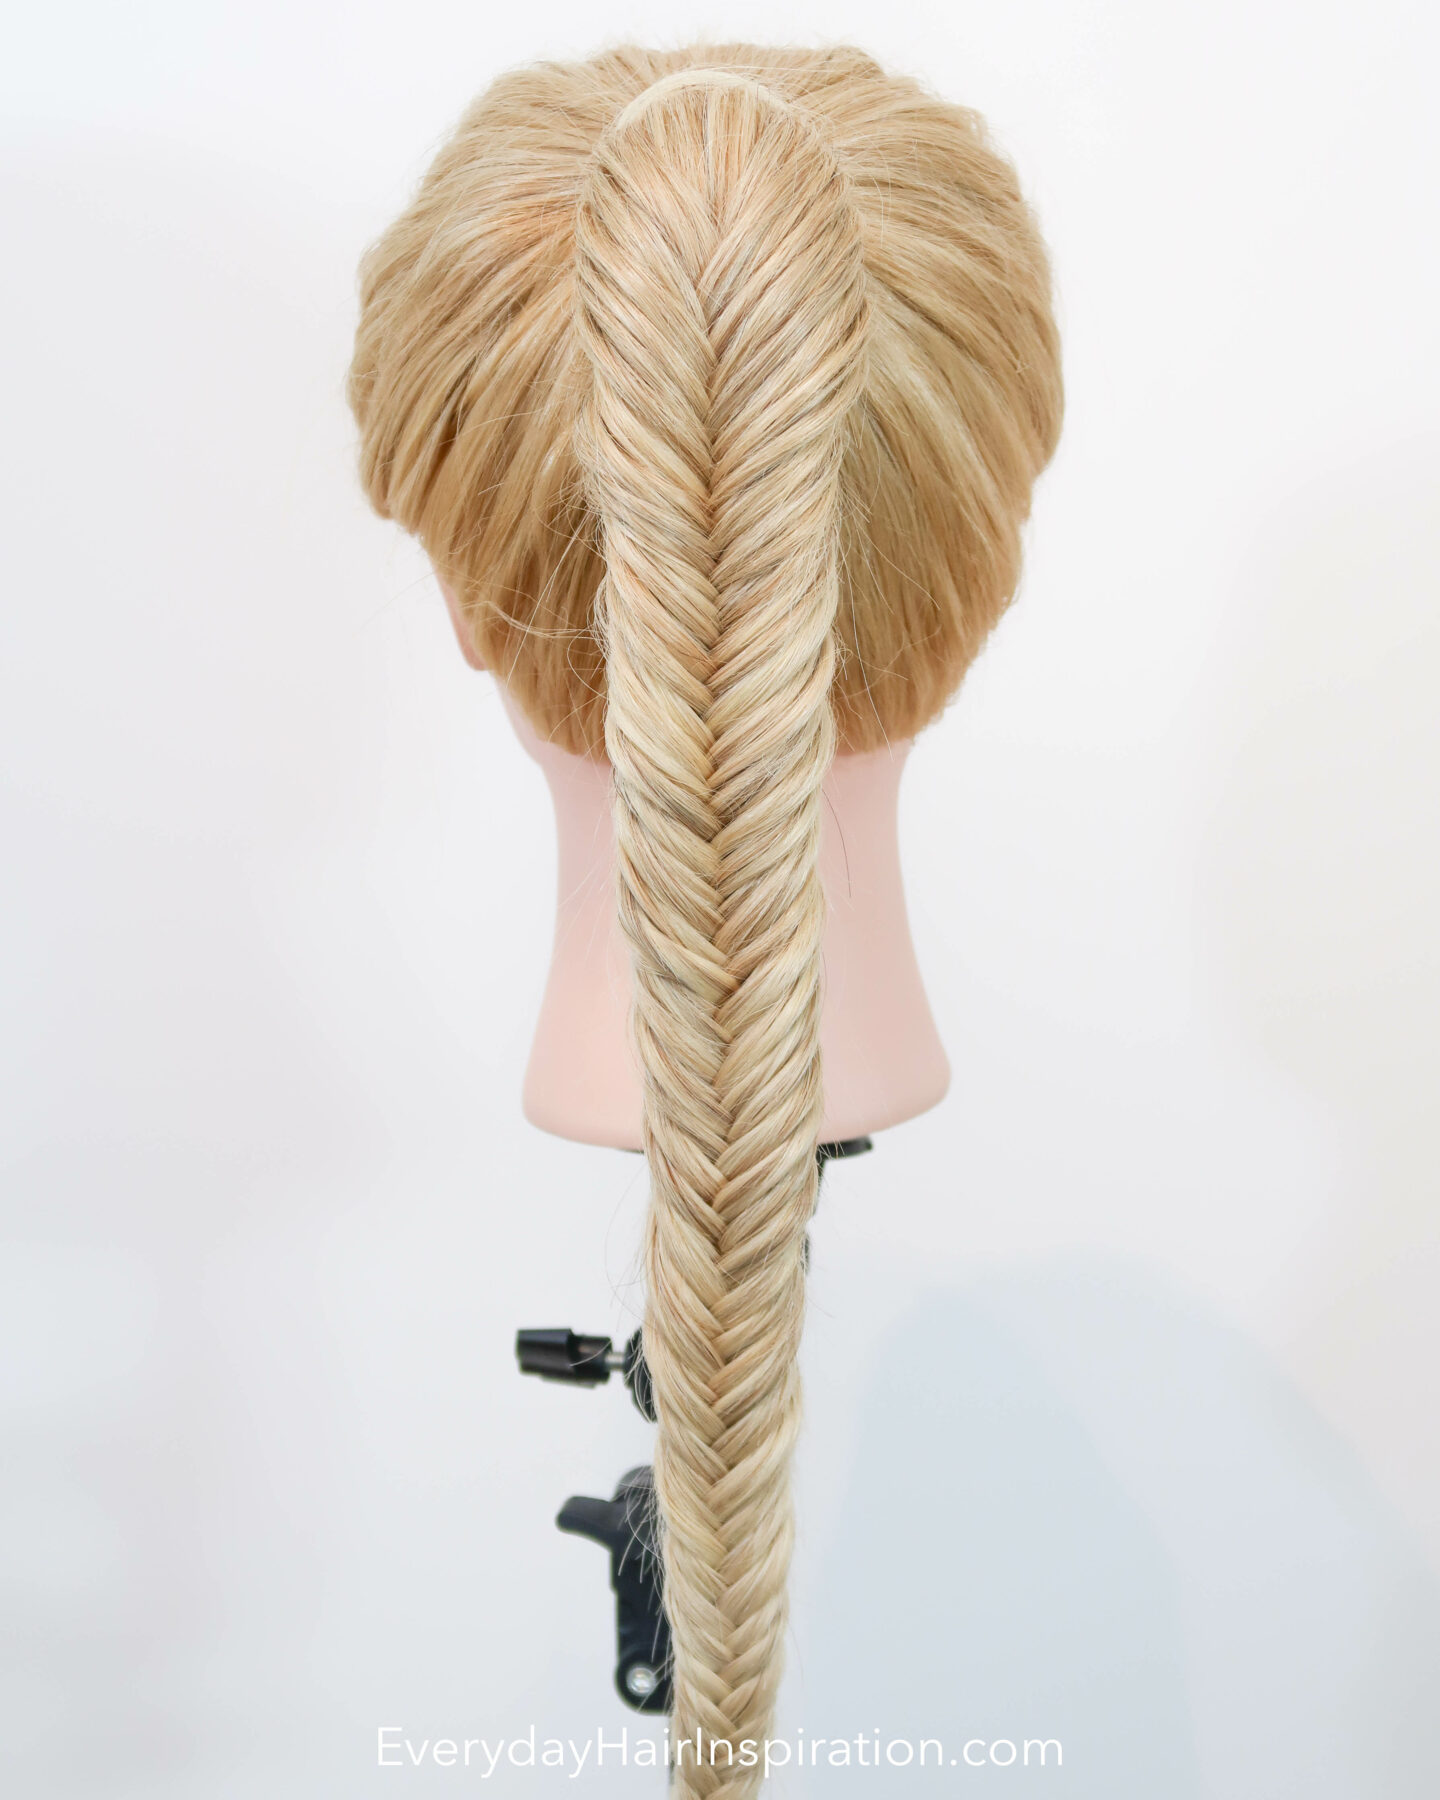 Blonde hairdresser doll seen from the back with a high ponytail with a fishtail braid, braided in the hair.